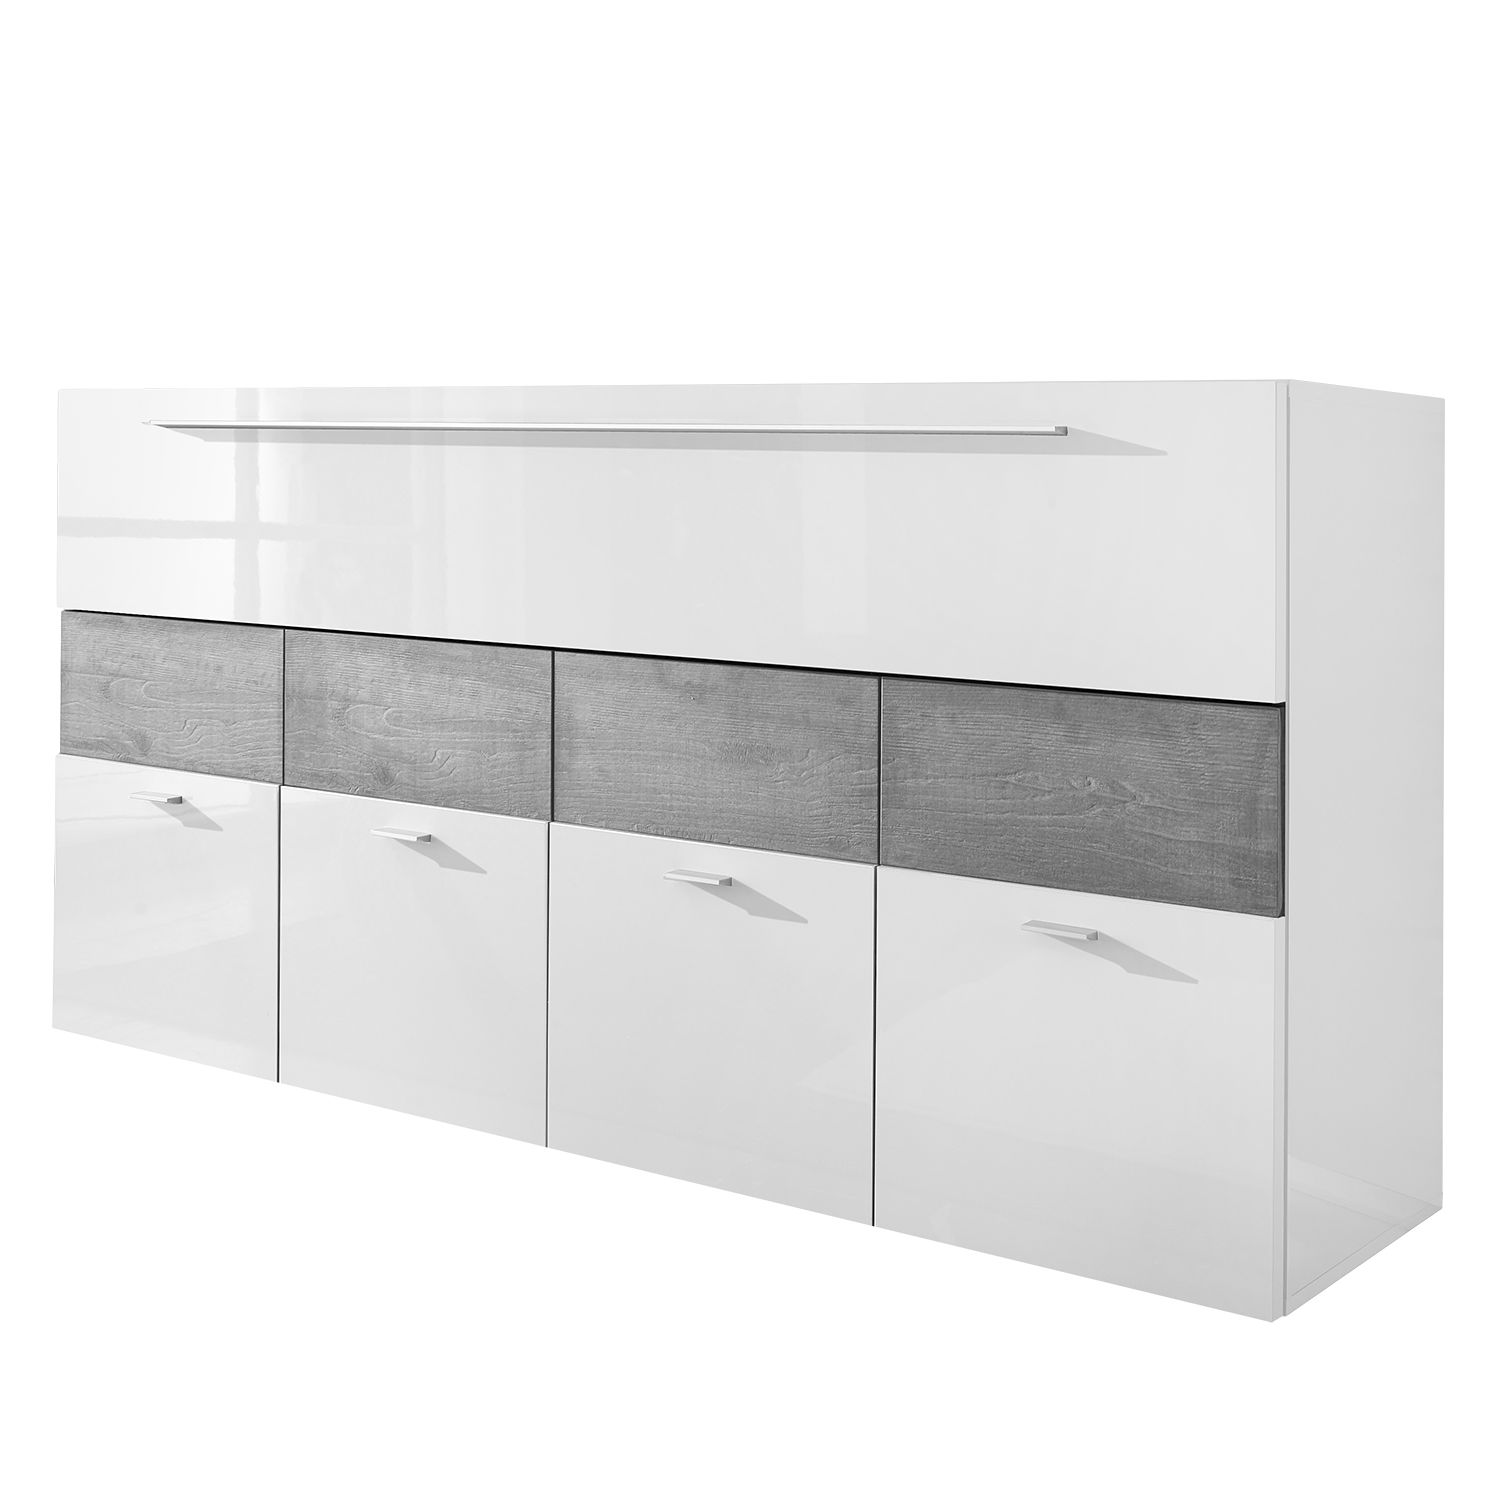 sideboard line lc hochglanz wei eiche grau dekor lc mobili g nstig. Black Bedroom Furniture Sets. Home Design Ideas